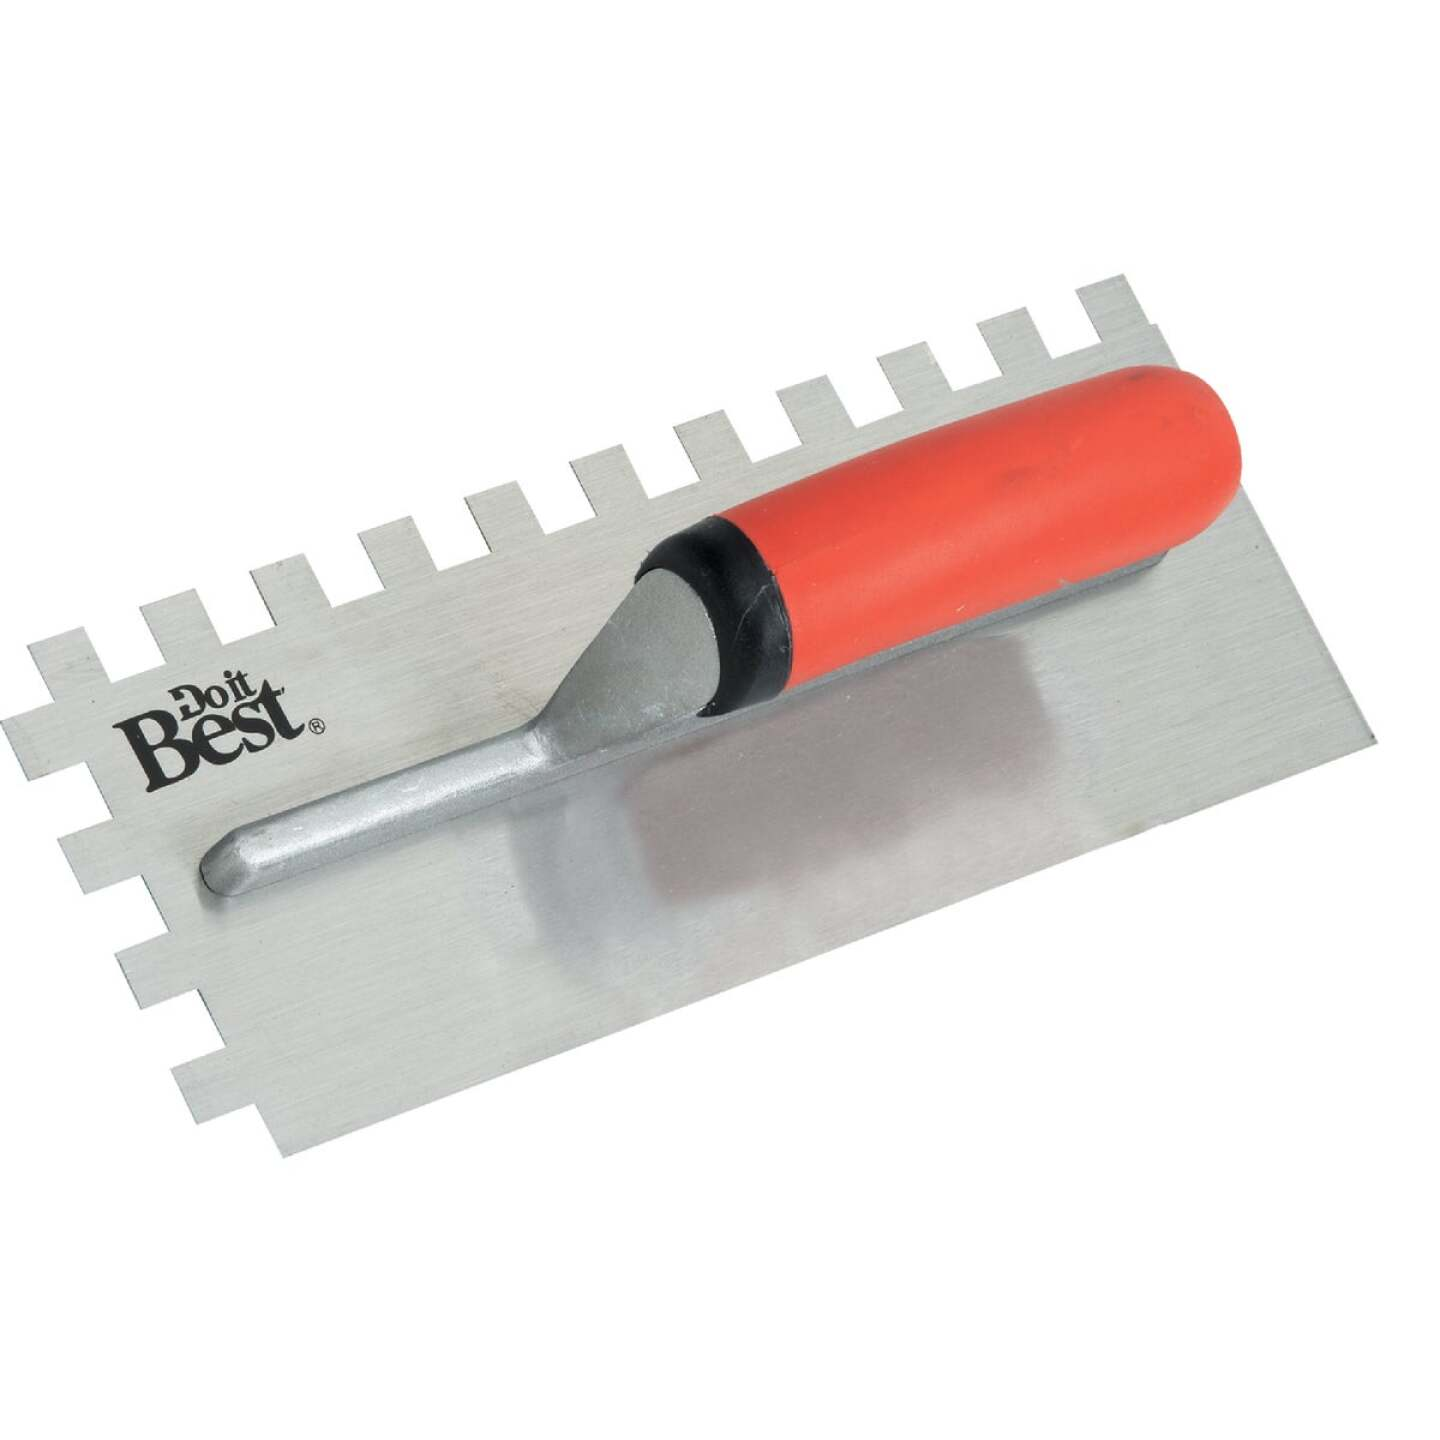 Do it Best 1/2 In. Square Notched Trowel Image 1